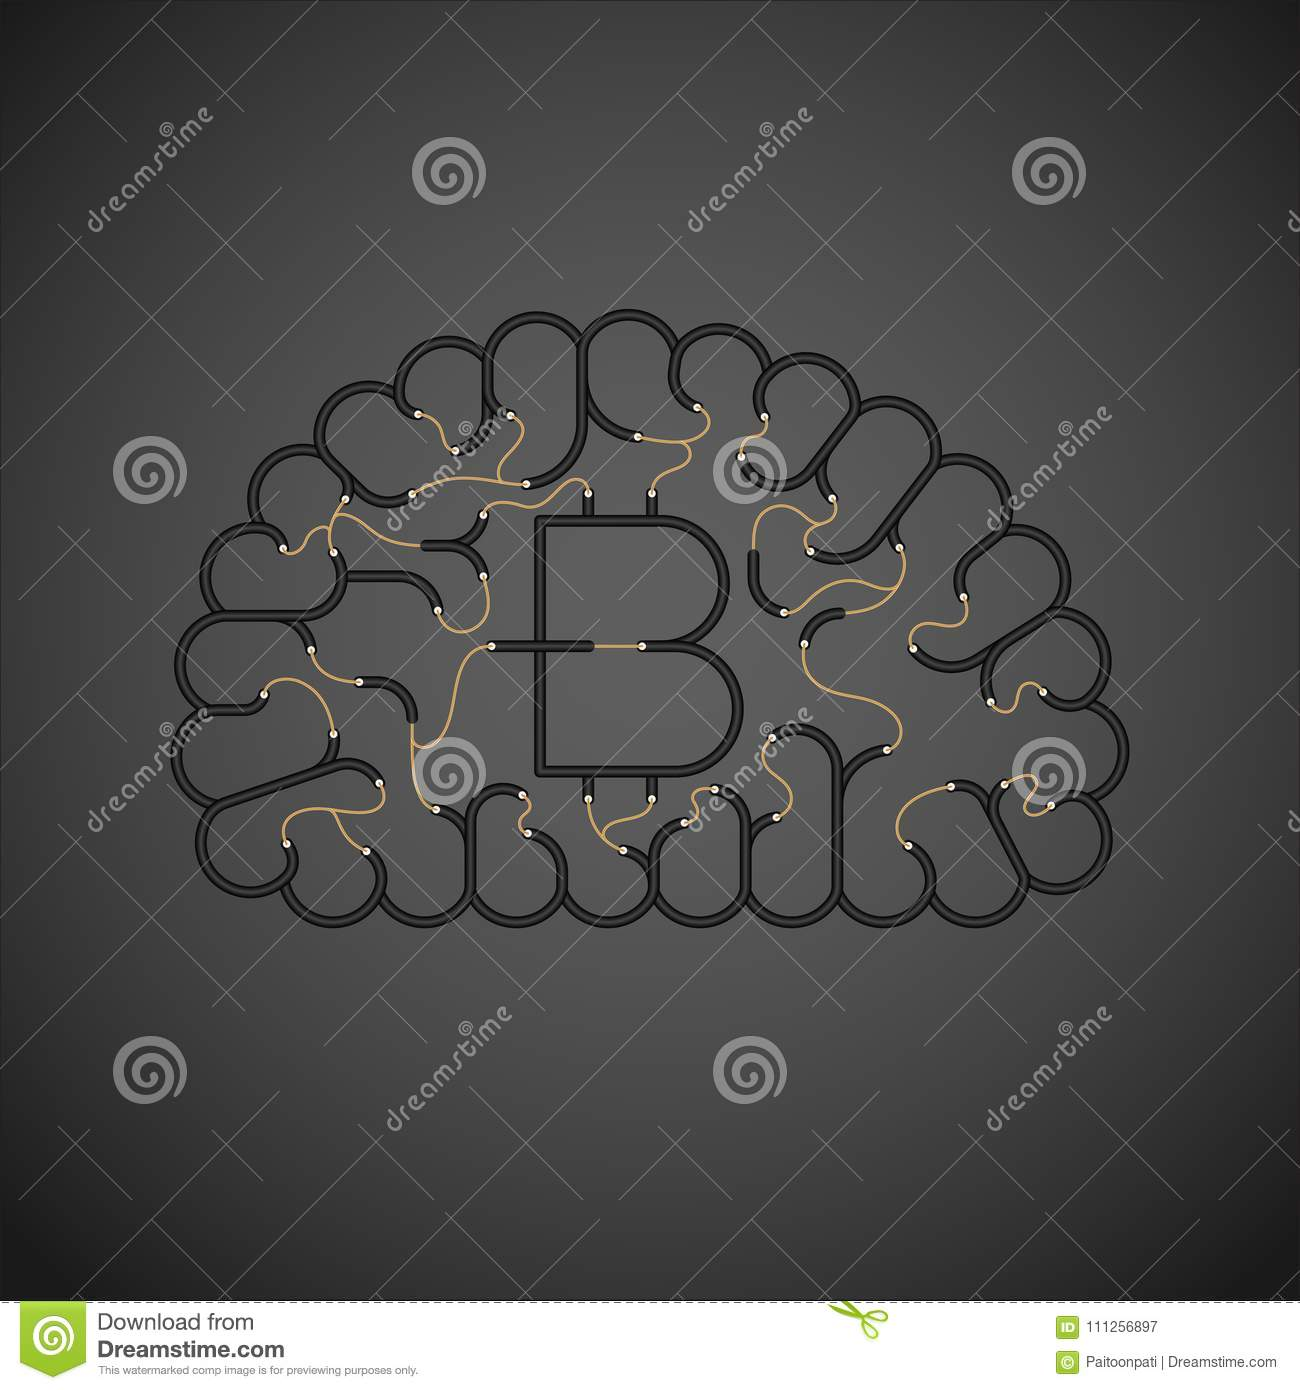 Electric Wire Cable Brain Black Color Internet Business Finance Wiring Diagram For Download Concept Design With Currency Bitcoin